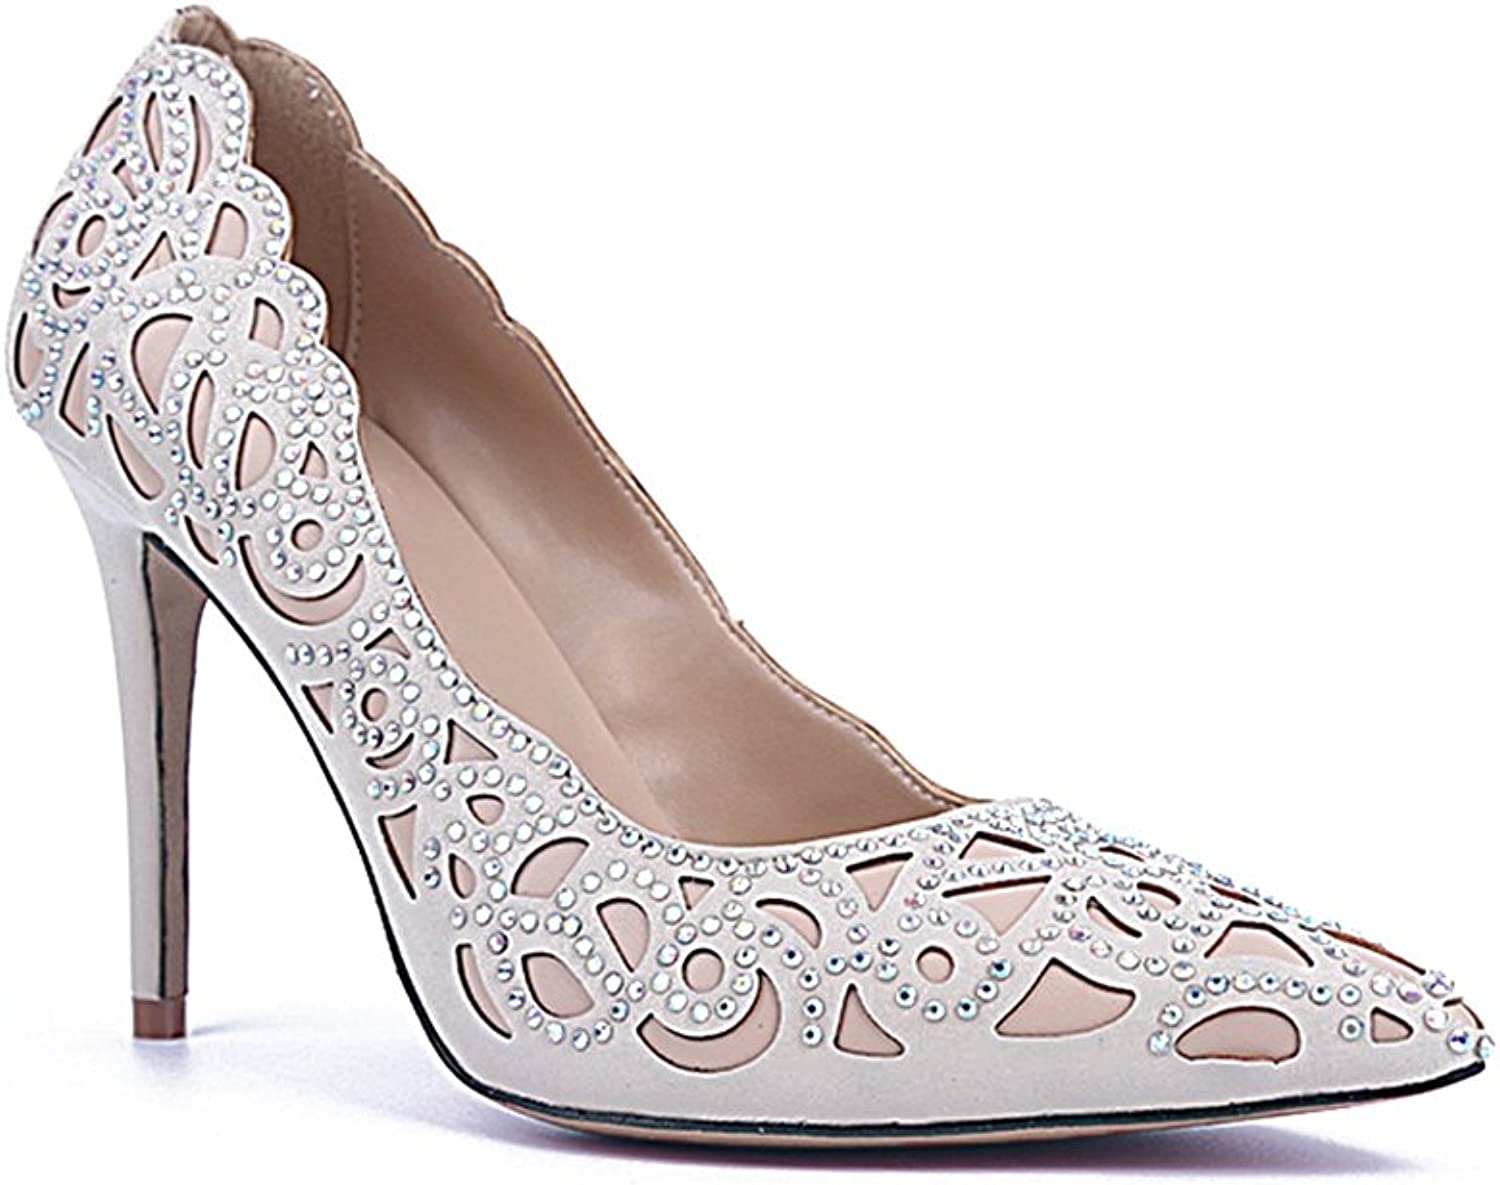 TDA Women's MA04174 Cut Out Floral Closed Toe Sheepskin Wedding Party Evening Prom Dress shoes